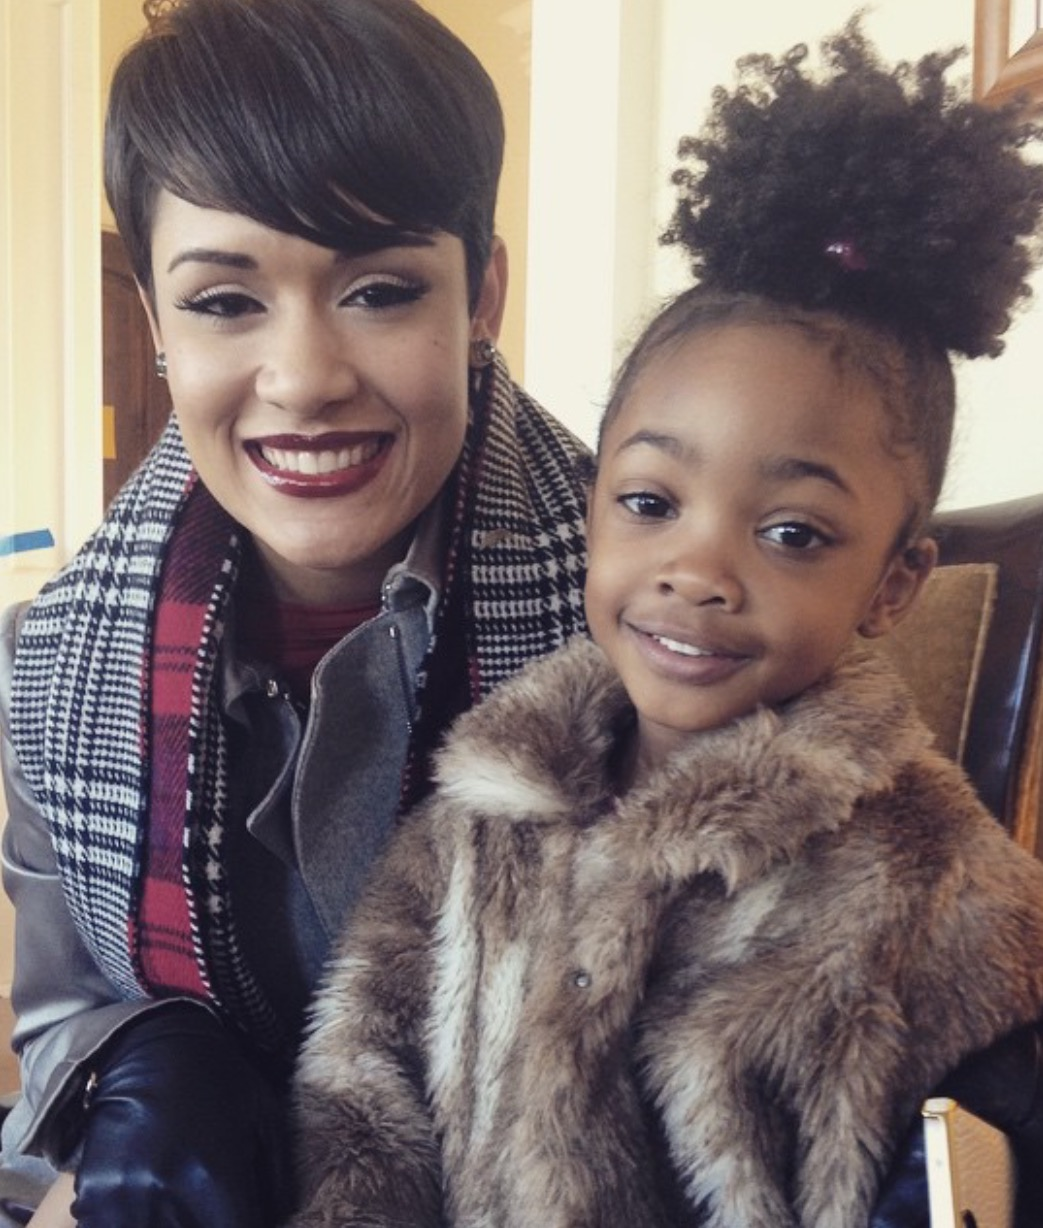 Leah Jeffries with Gracce Gealey who plays Anika Calhoun on Empire.